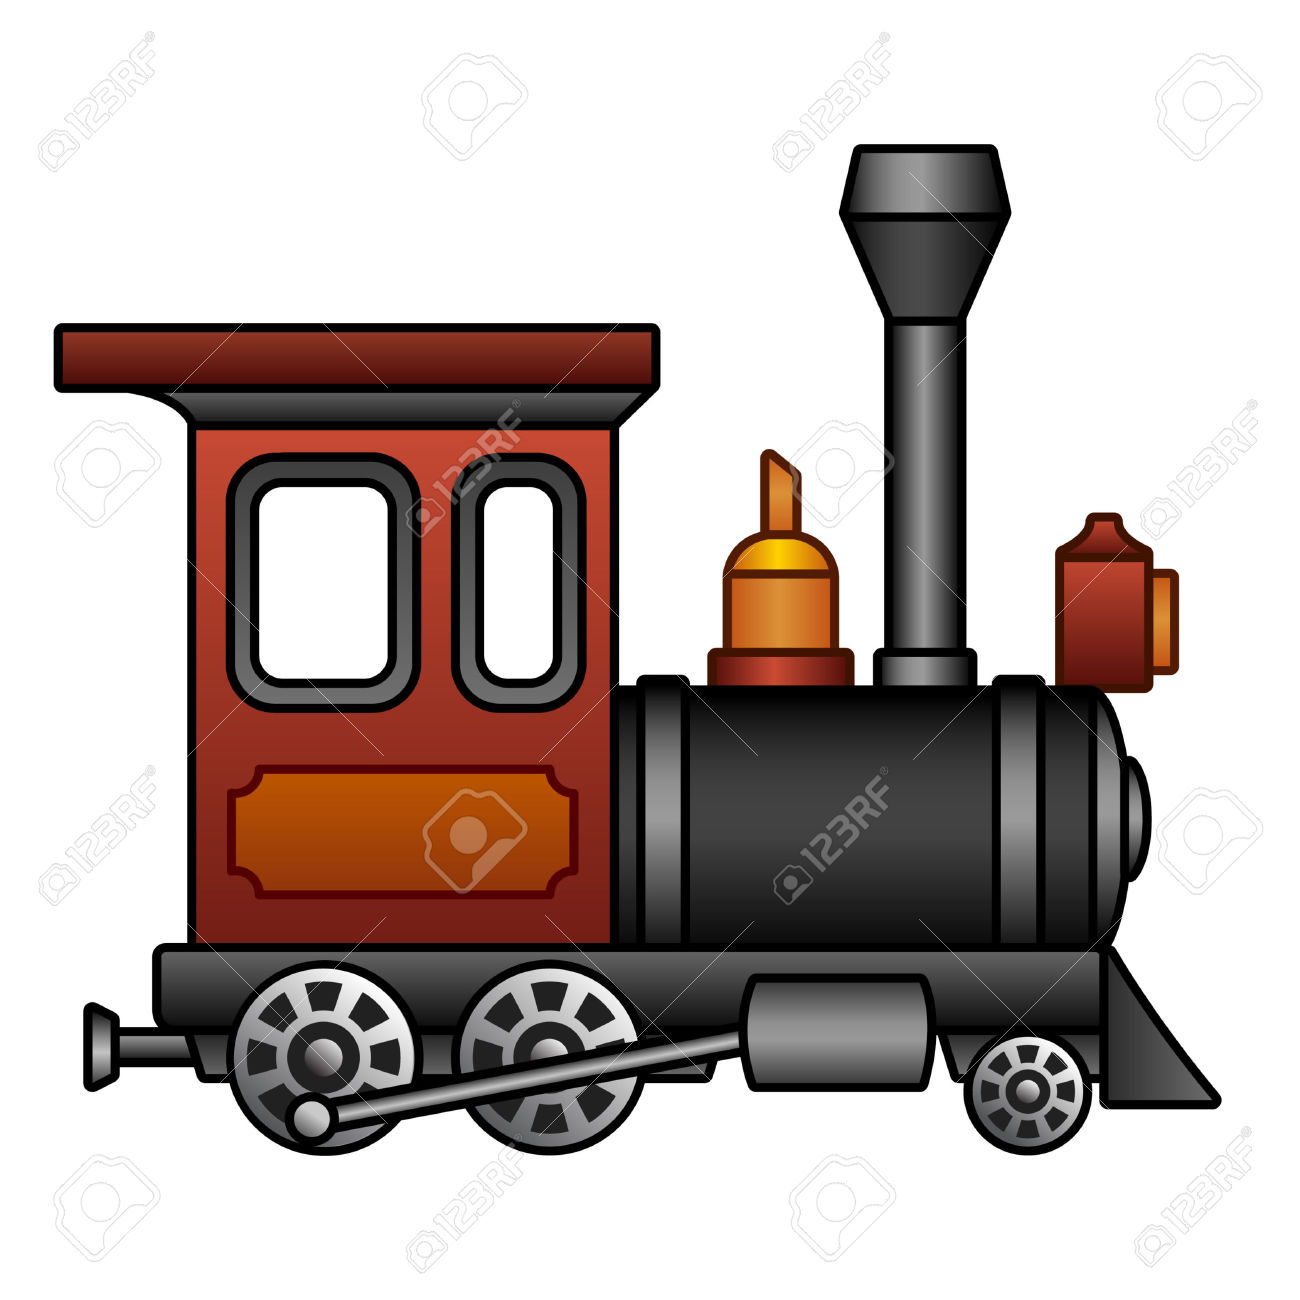 Train Royalty Free Cliparts, Vectors, And Stock Illustration.